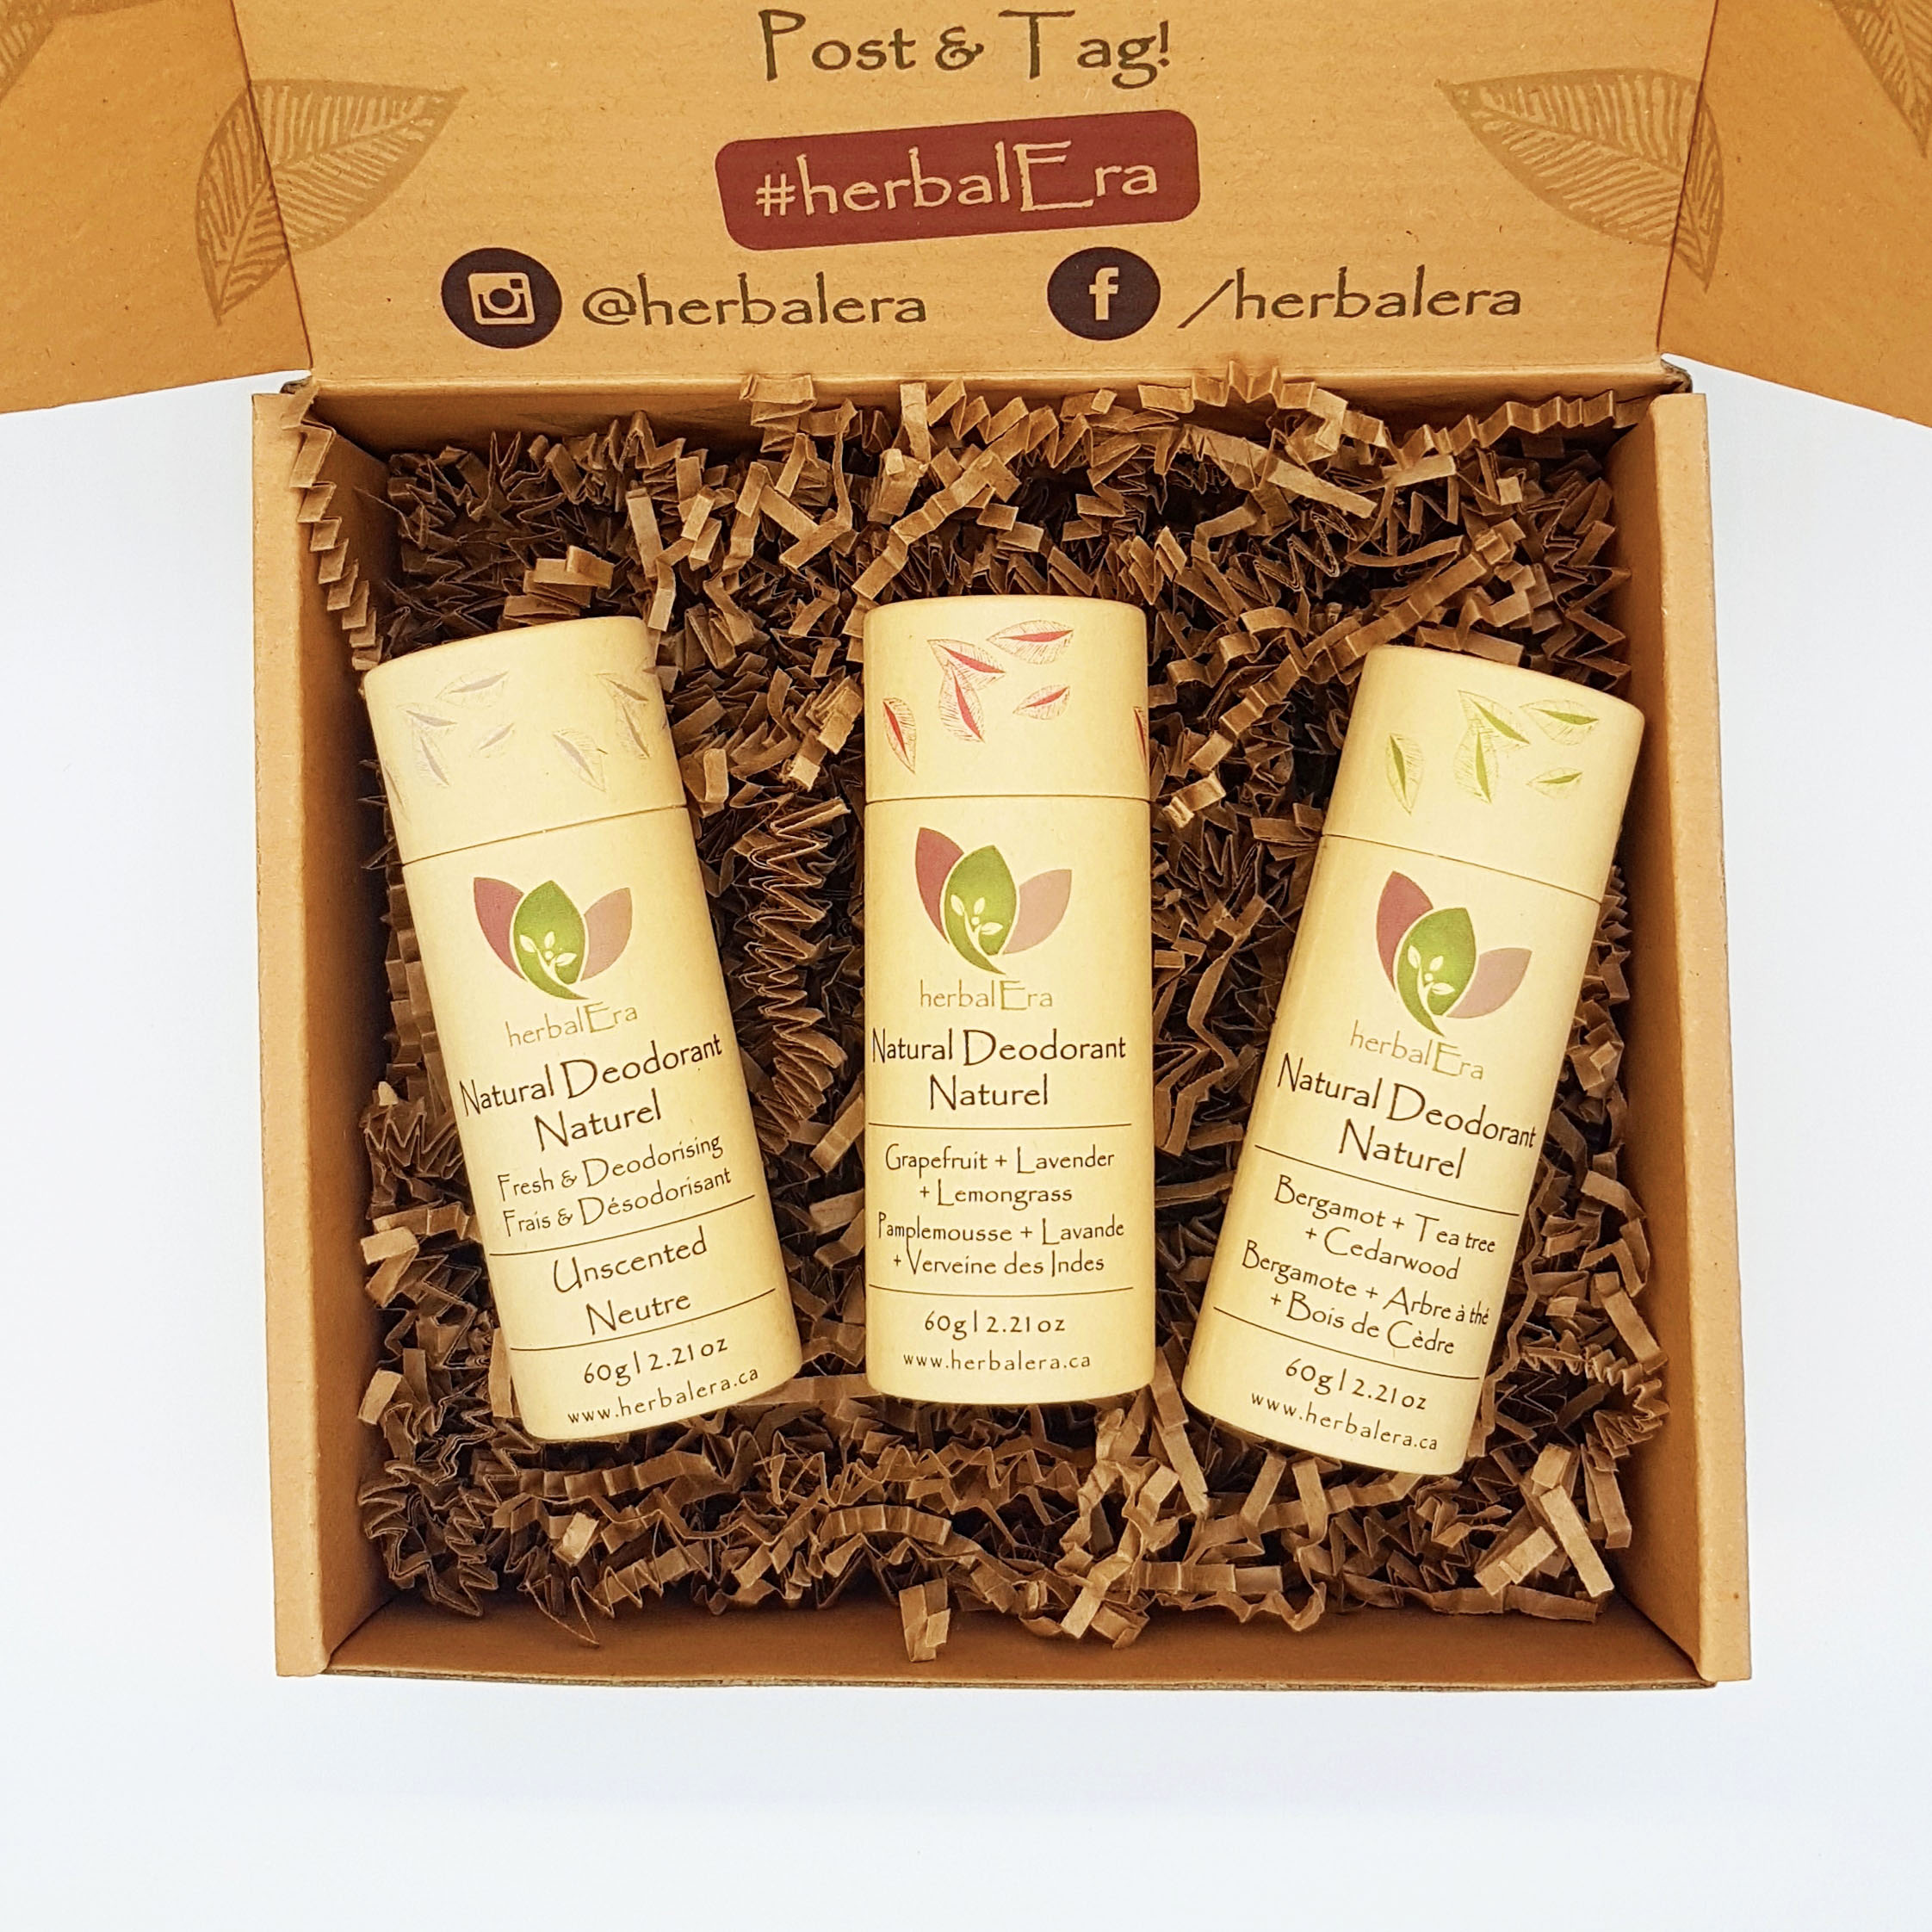 Gift set box christmas birthday spa for her for her for mom for dad anniversary birth prom girl boy valentine's day mother's day father's day skin care self care natural organic fair trade local soap soap tray Valentine gift bridesmaid